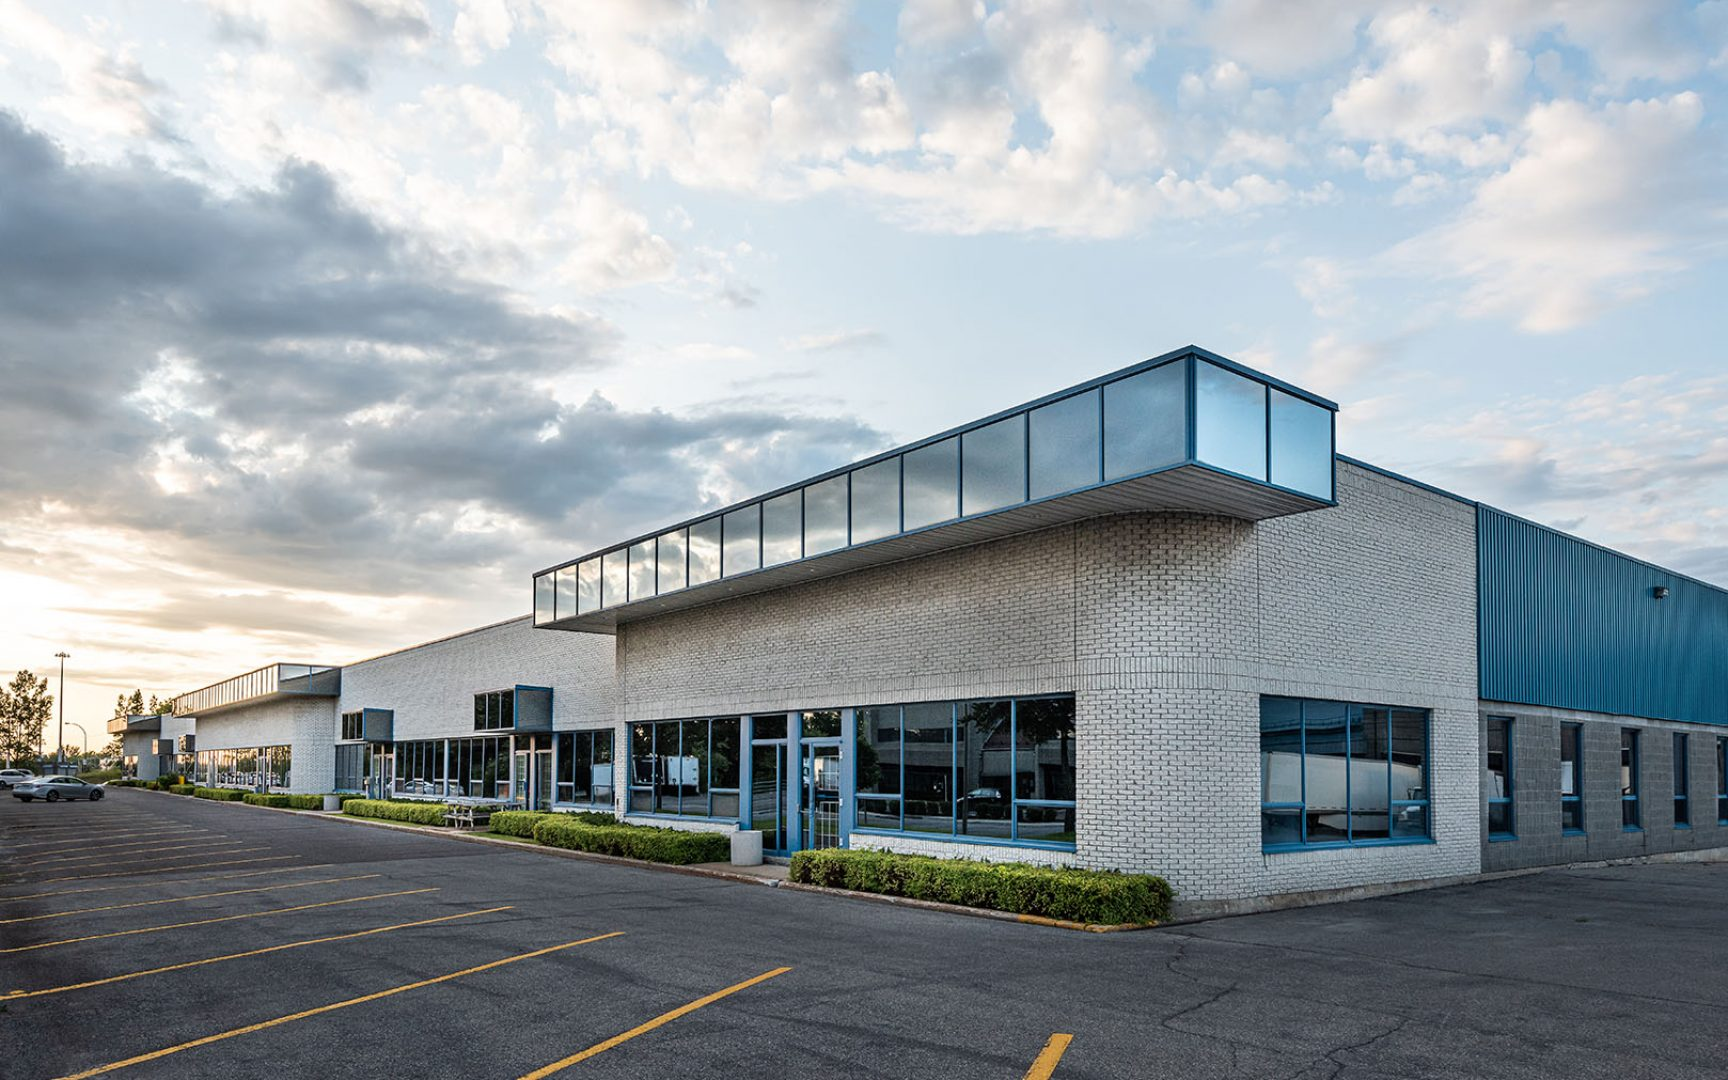 The exterior facade of a generic small business